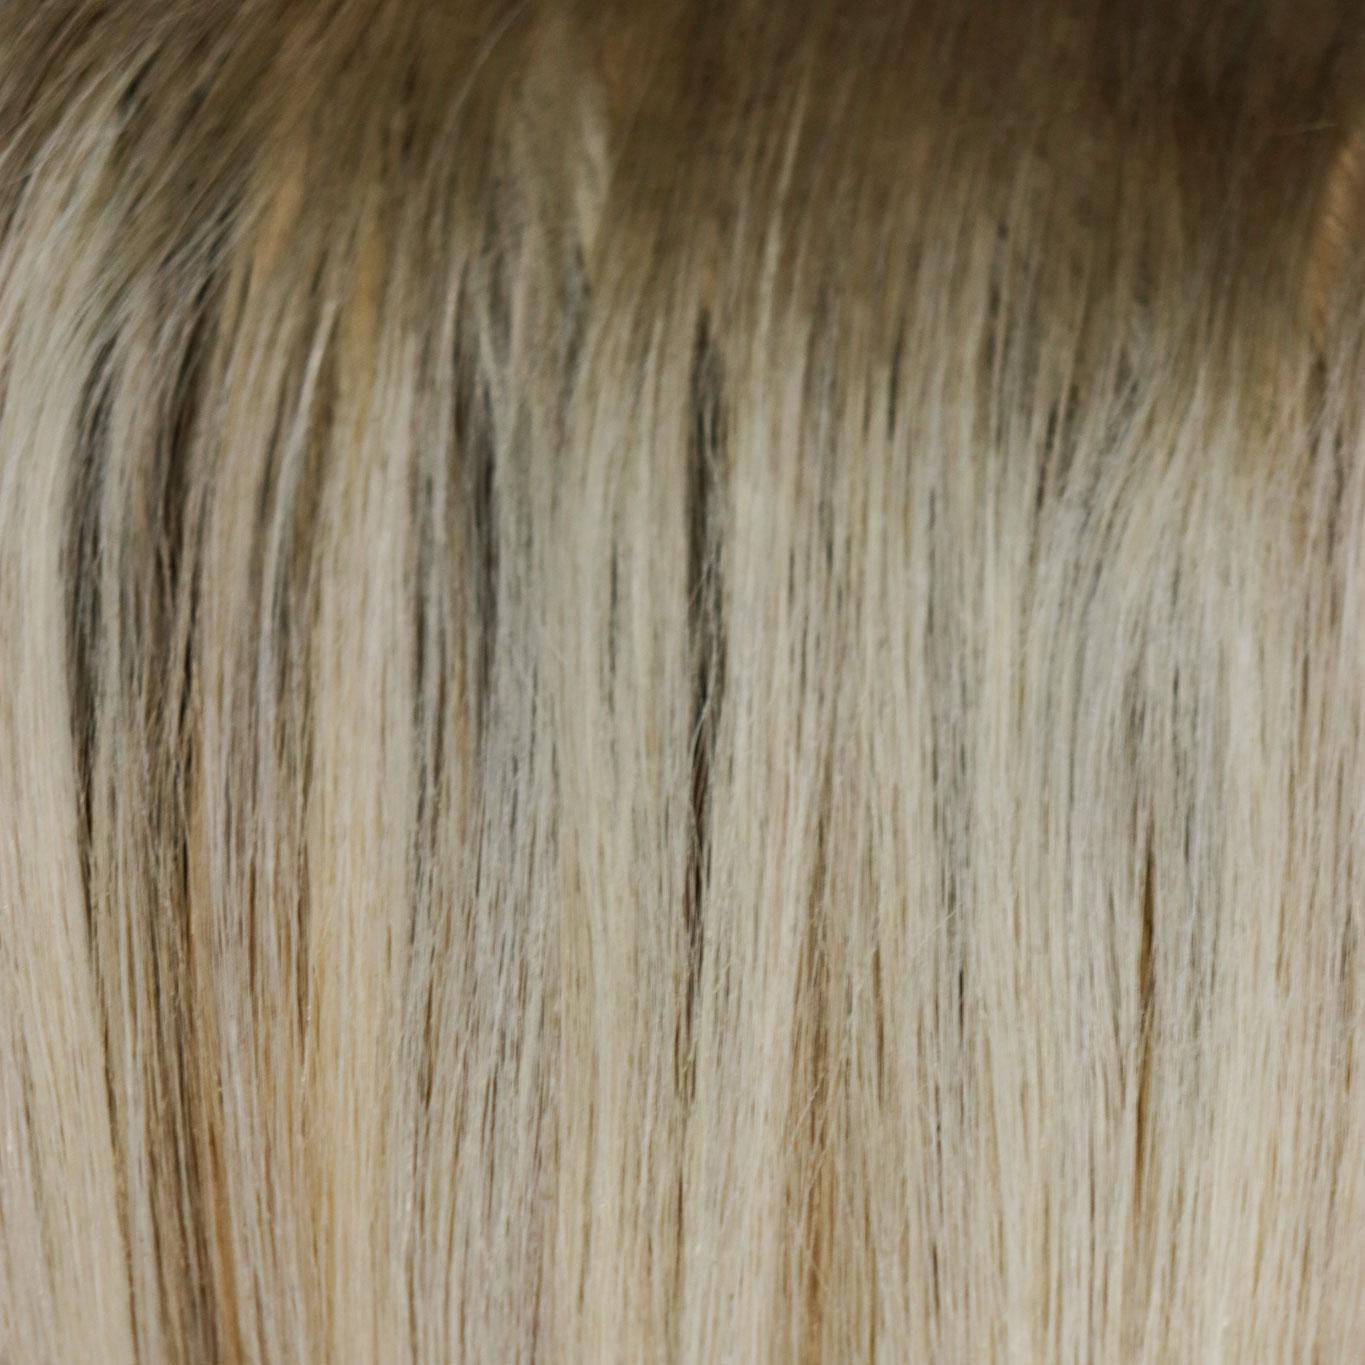 Beachwashed X Laced Hair Machine Sewn Weft Extensions - Shell